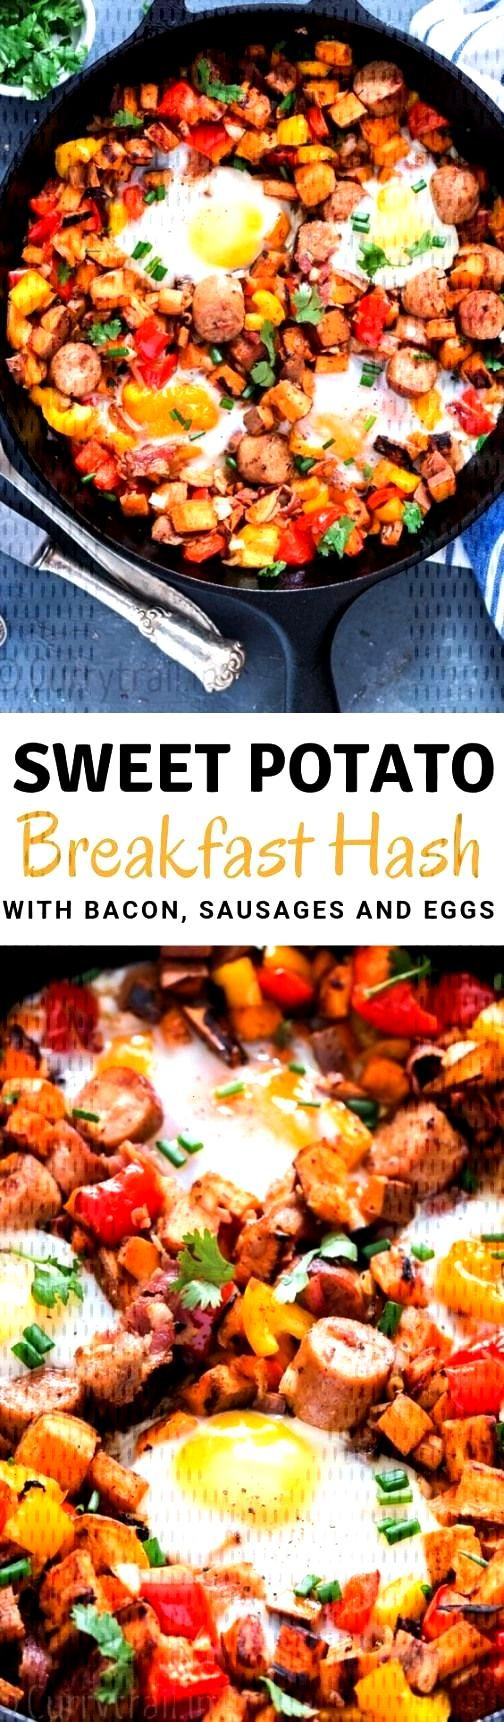 Sweet potato hash breakfast dish is all hearty healthy and satisfying the same time. Its important